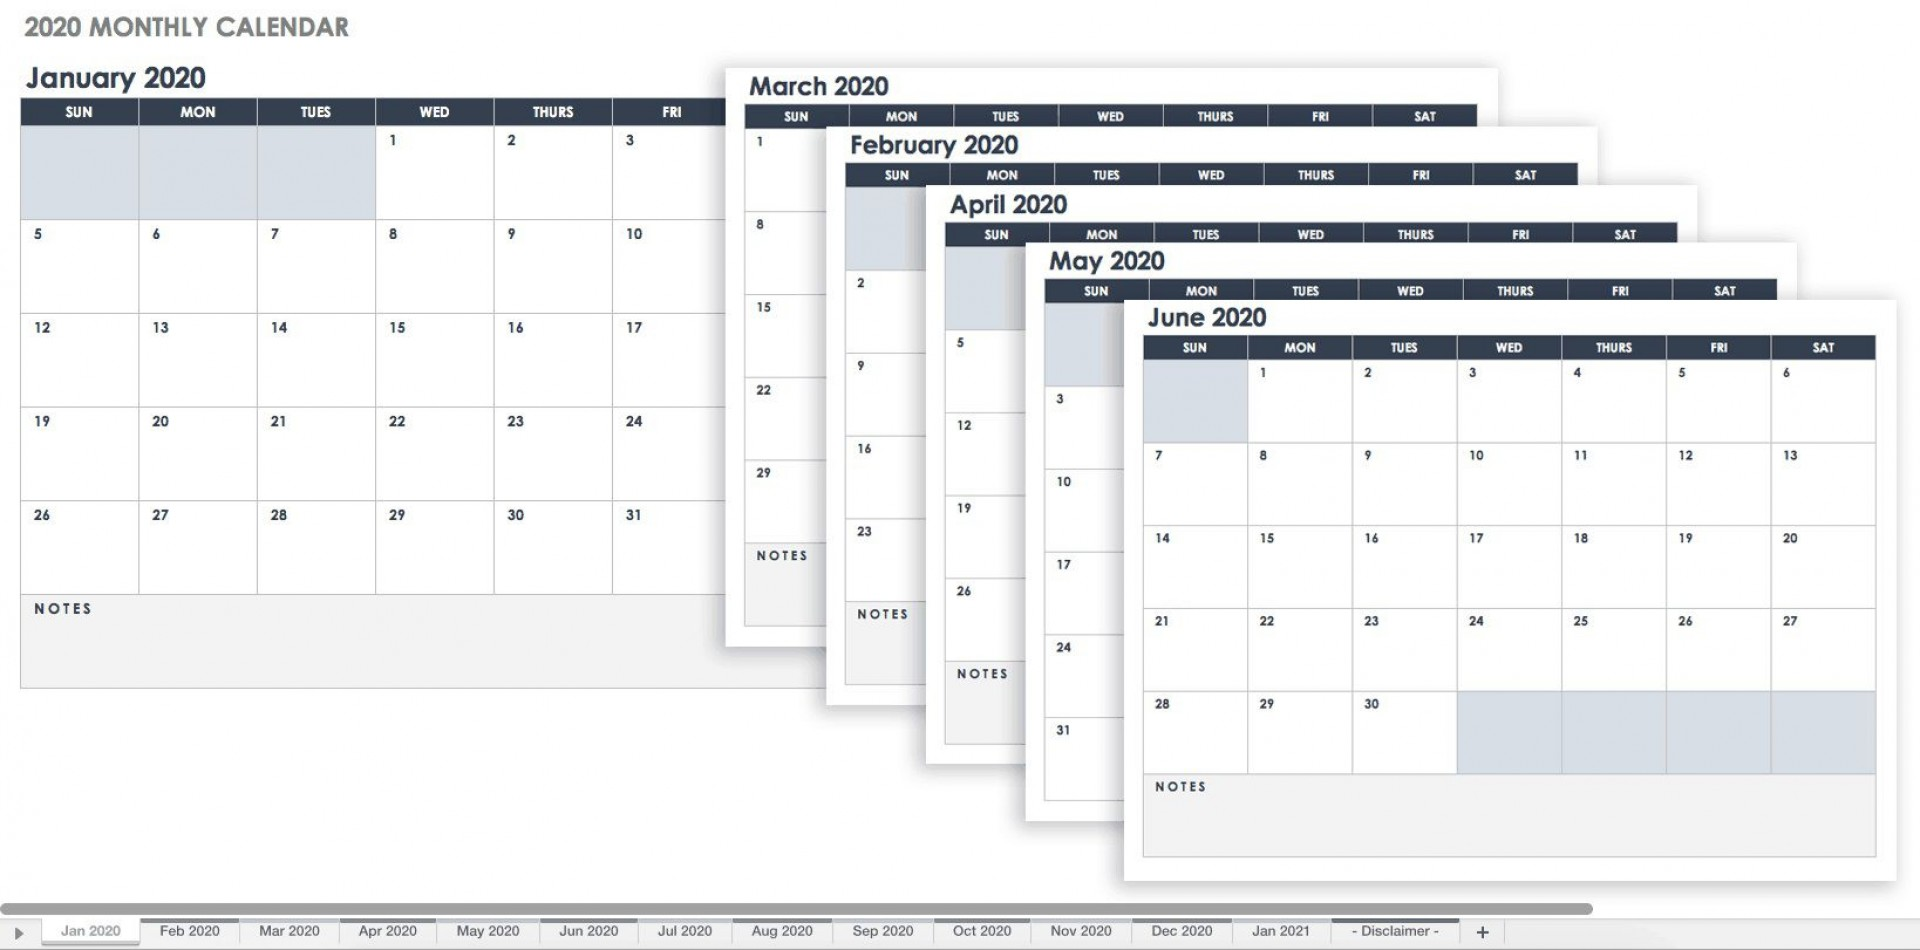 003 Singular Google Sheet Calendar Template 2020 Highest Quality  Monthly And 2021 2020-211920